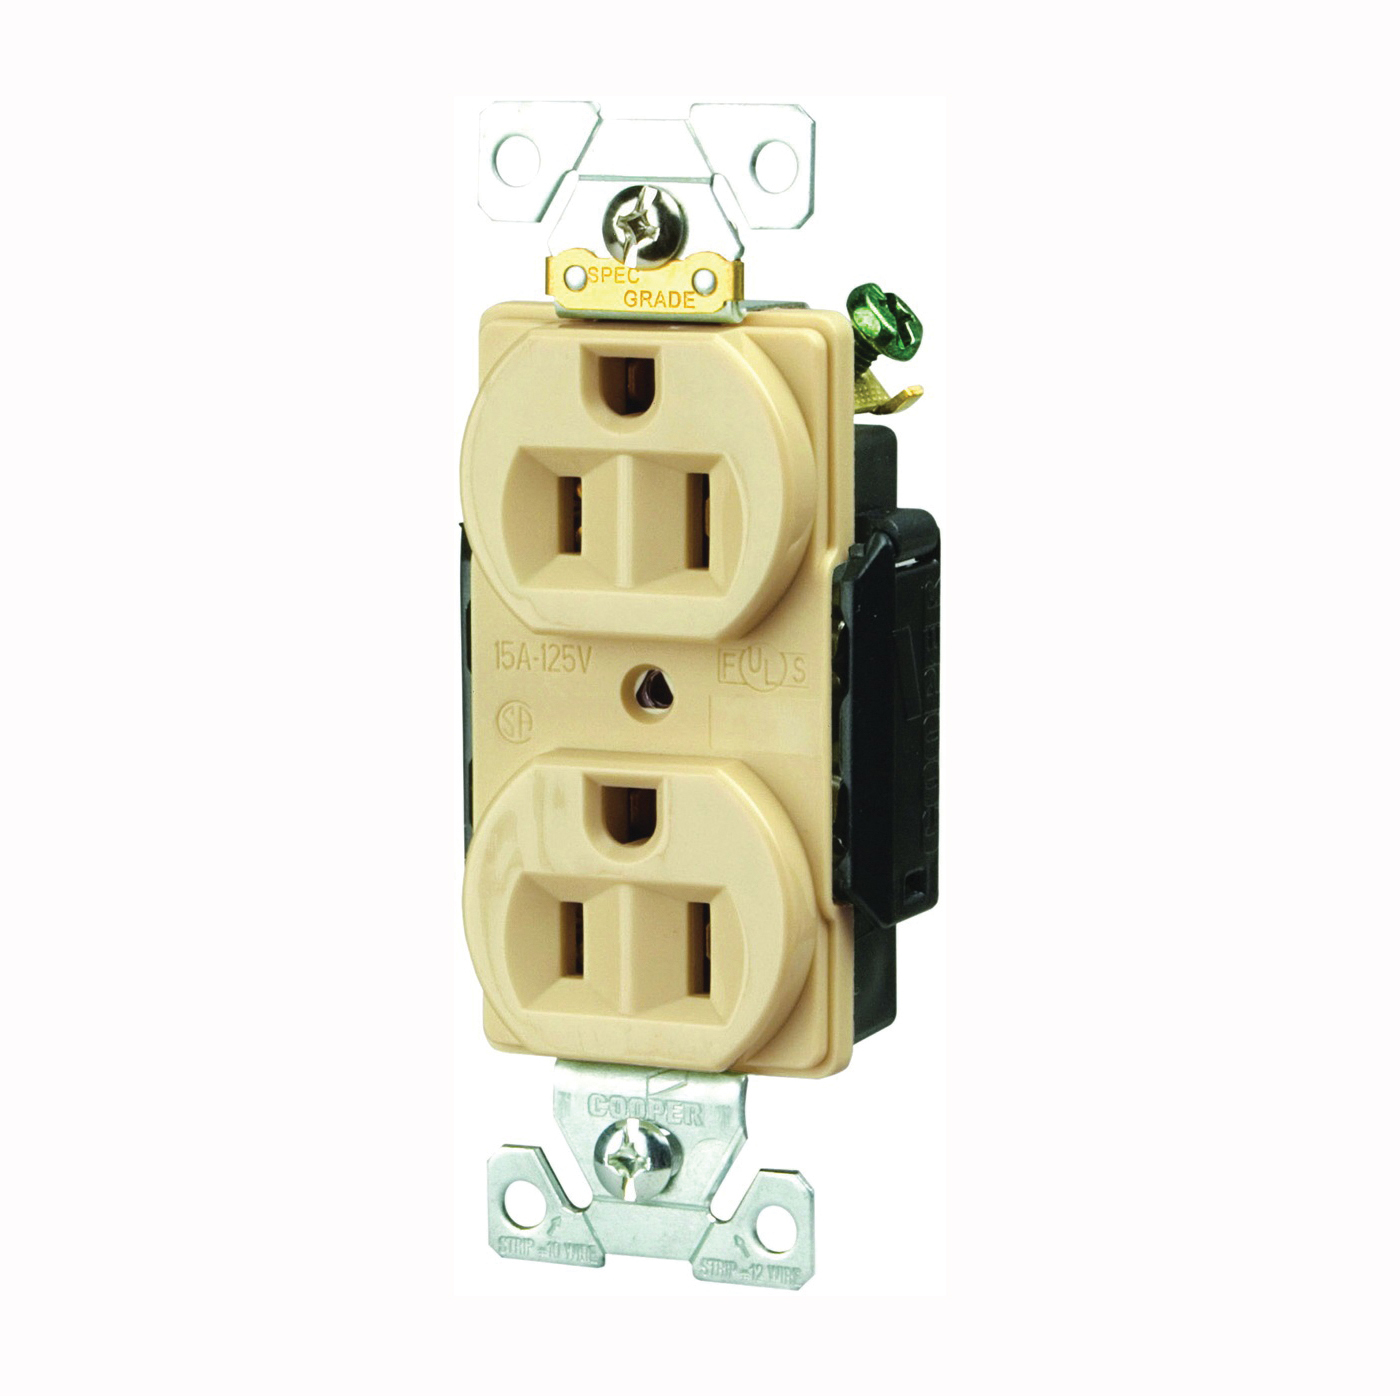 Picture of Arrow Hart AH5252 Series AH5252V Duplex Receptacle, 2-Pole, 15 A, 125 V, Back, Side Wiring, NEMA: 5-15R, Ivory